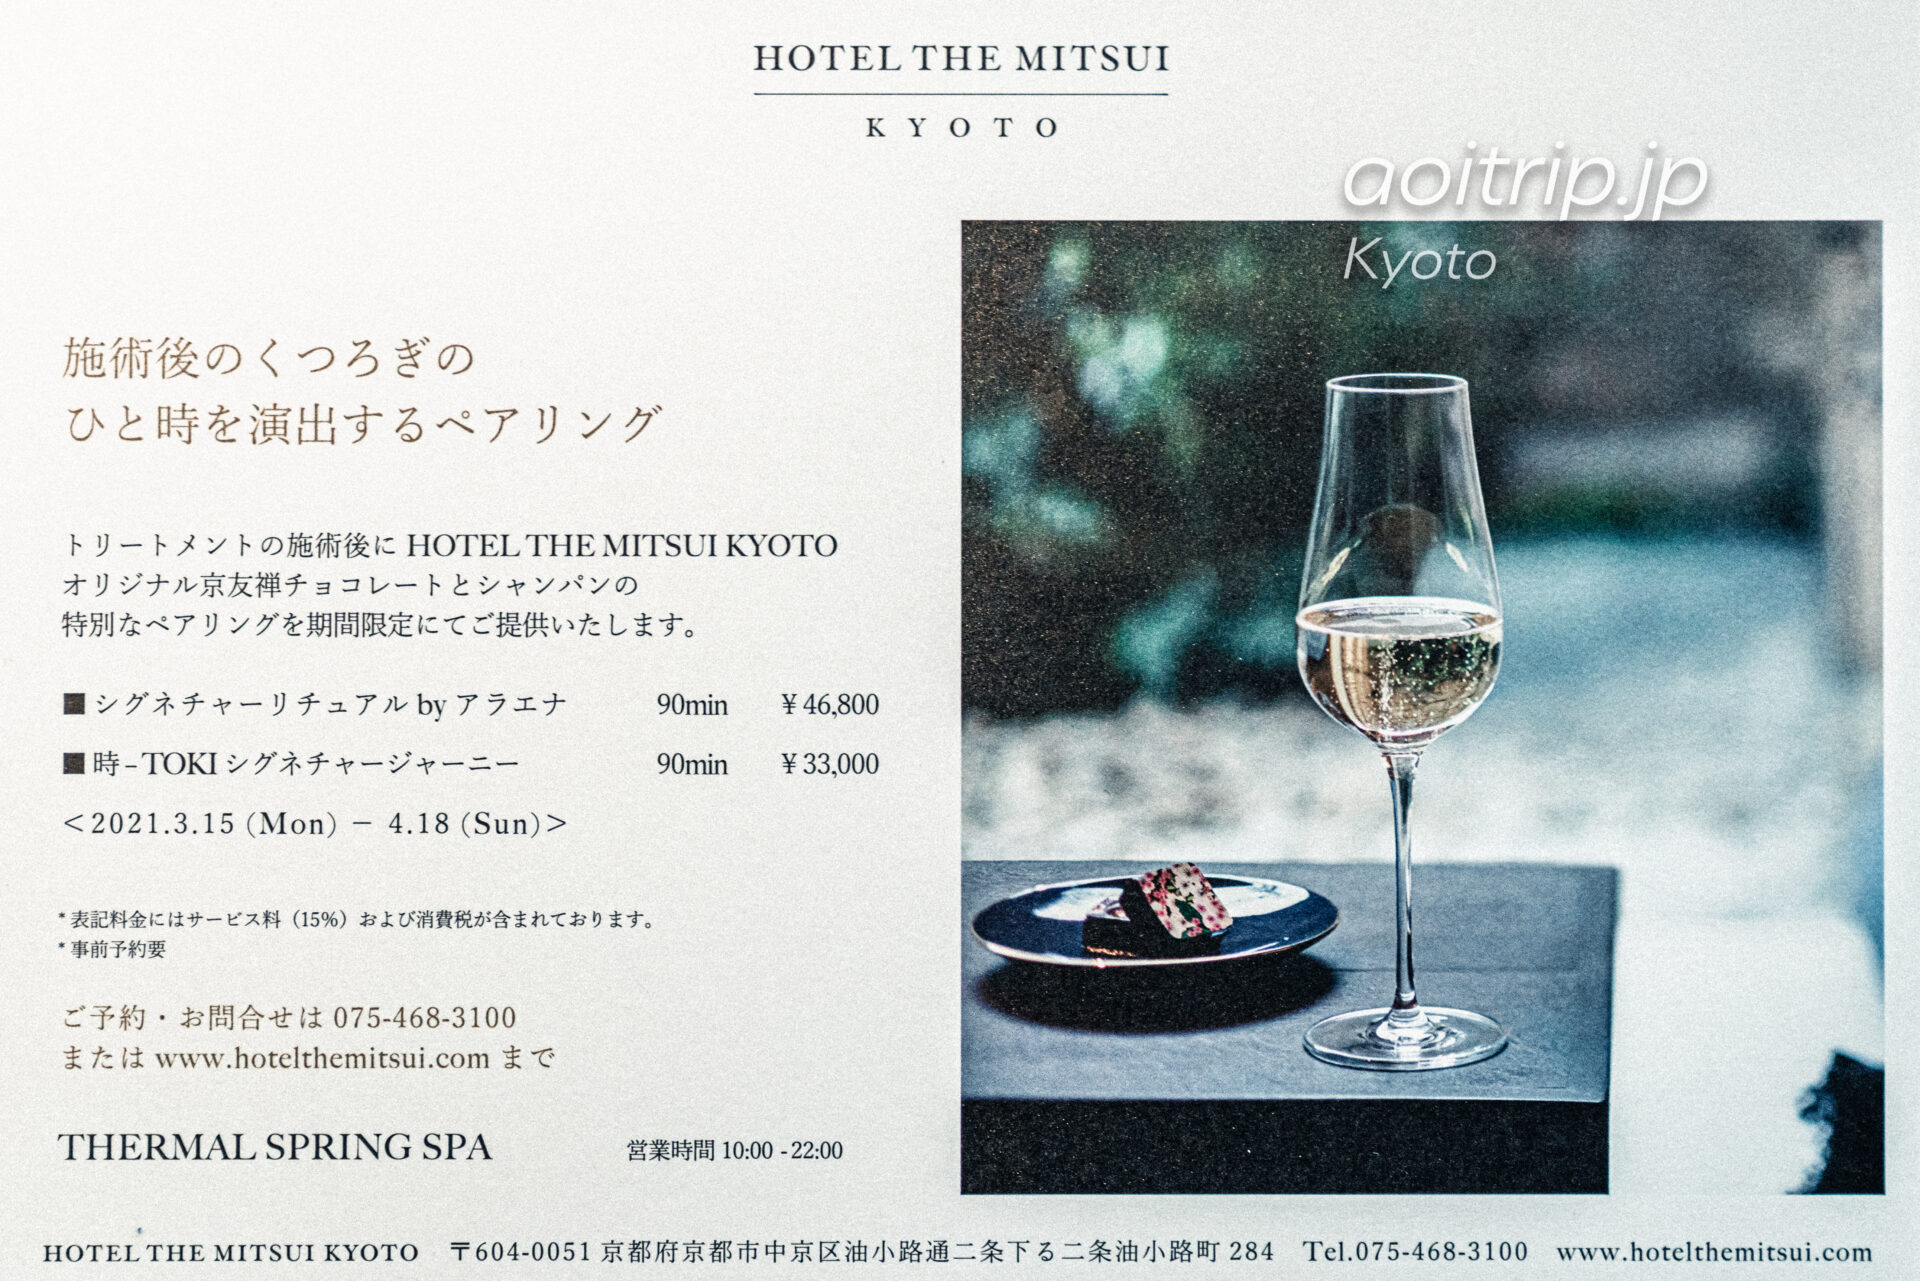 HOTEL THE MITSUI KYOTO サーマルスプリングSPAのイベント